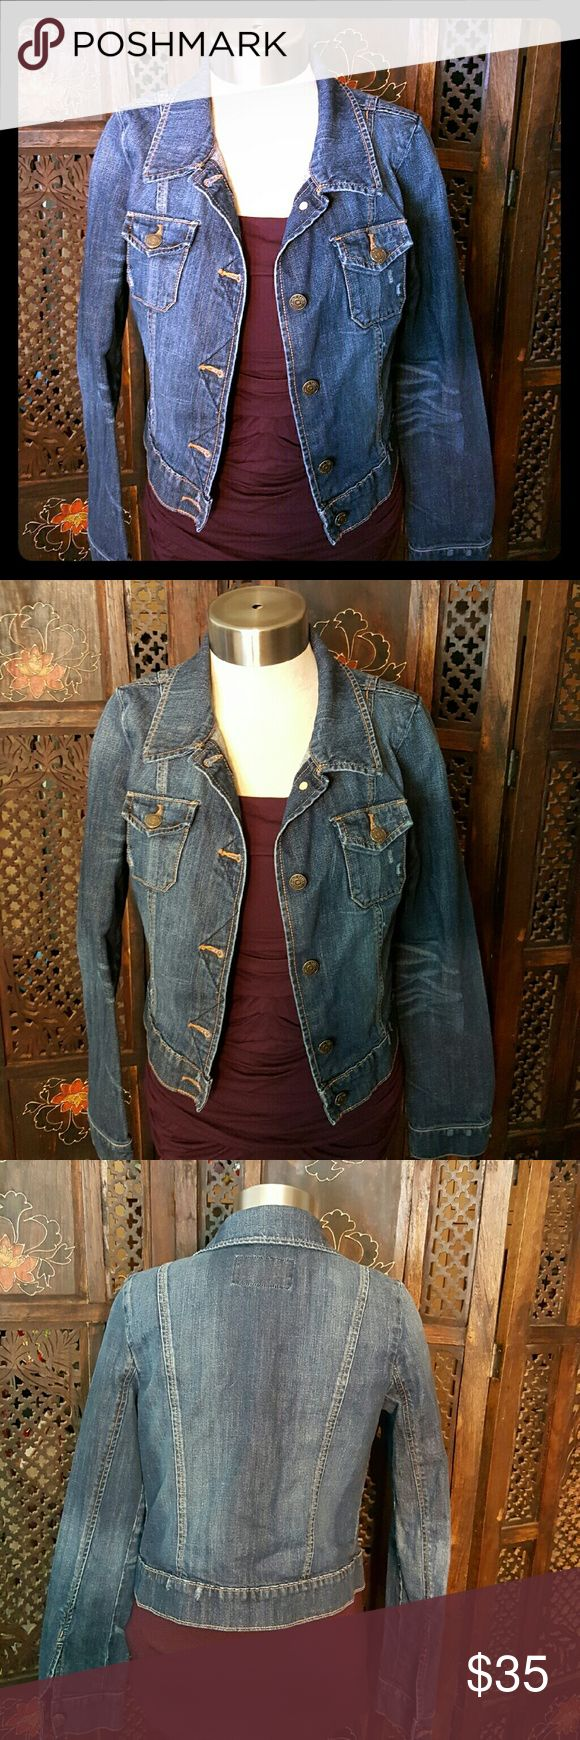 Perfect Old Navy Jean Jacket I love this jean jacket so much, but barley got to wear it, because a gained a ton of weight and  it no linger fits me! My gain is your gain too! It has a small amount of manufactured distress marks on the pocket. Old Navy Jackets & Coats Jean Jackets